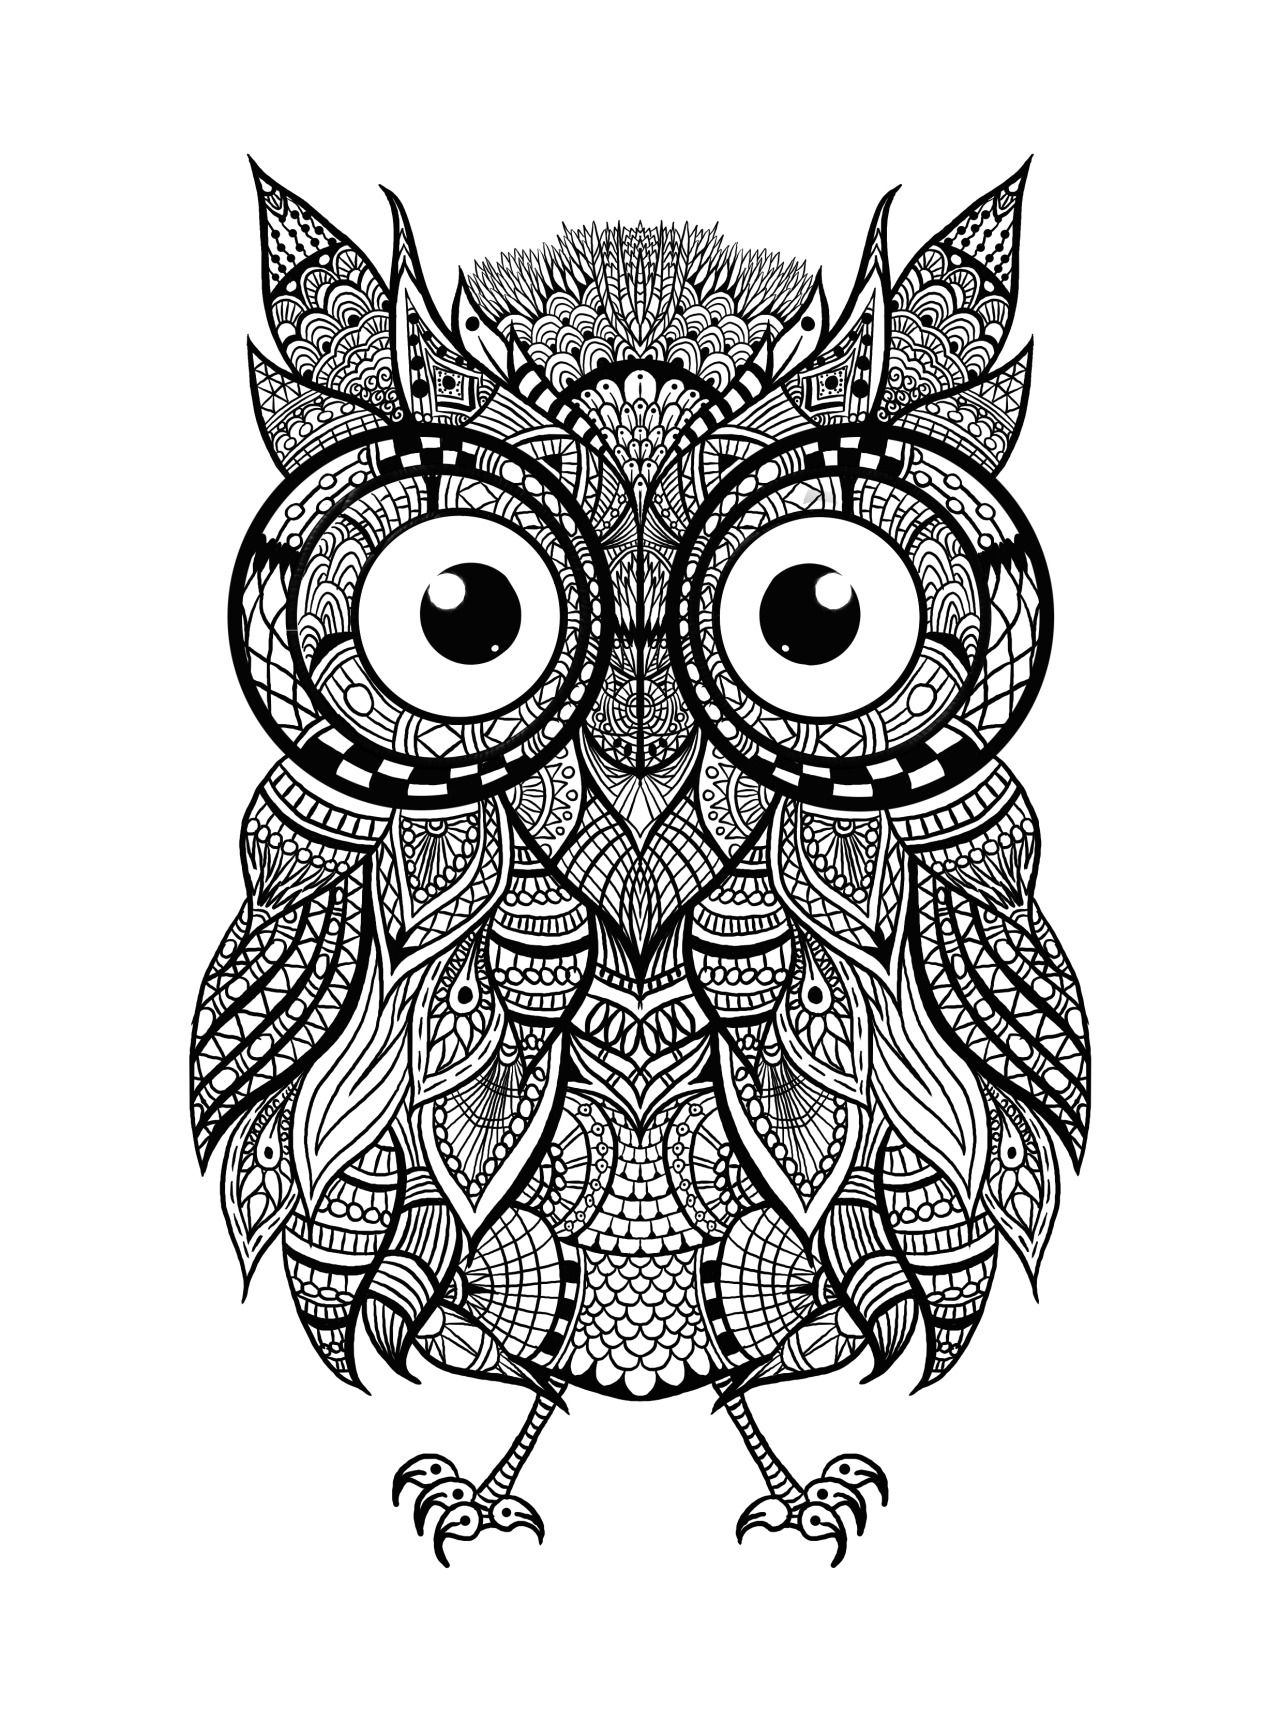 Check Out This Awesome Intricate Owl For Some Adult ColoringThis Image